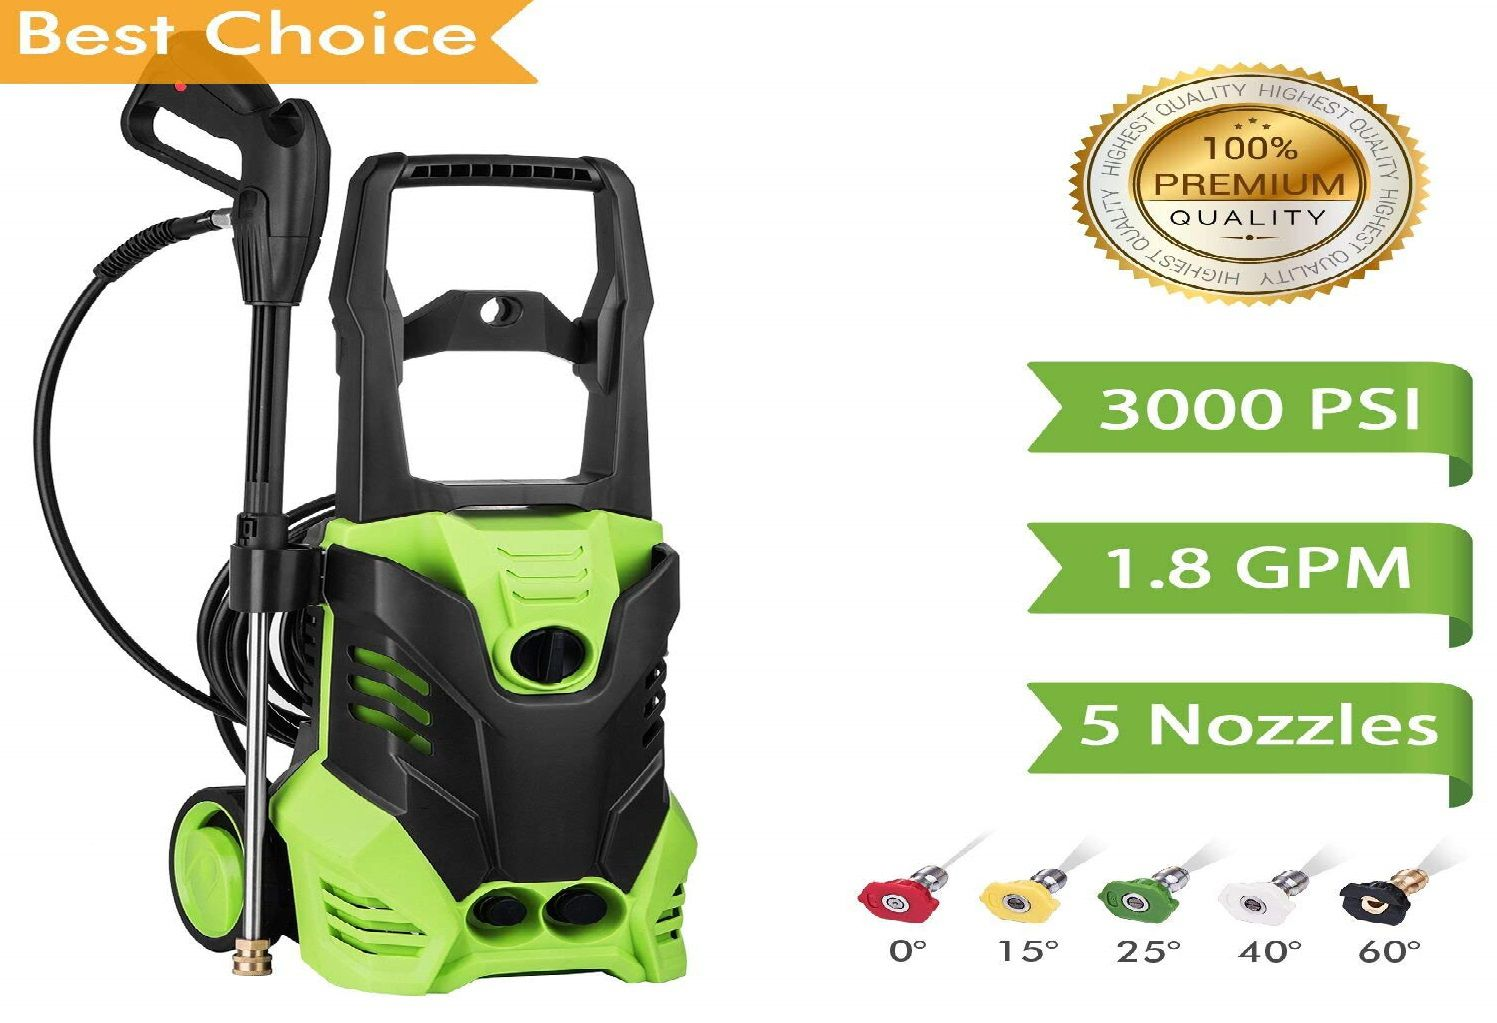 Flagup 3000 PSI Electric Pressure Washer Review